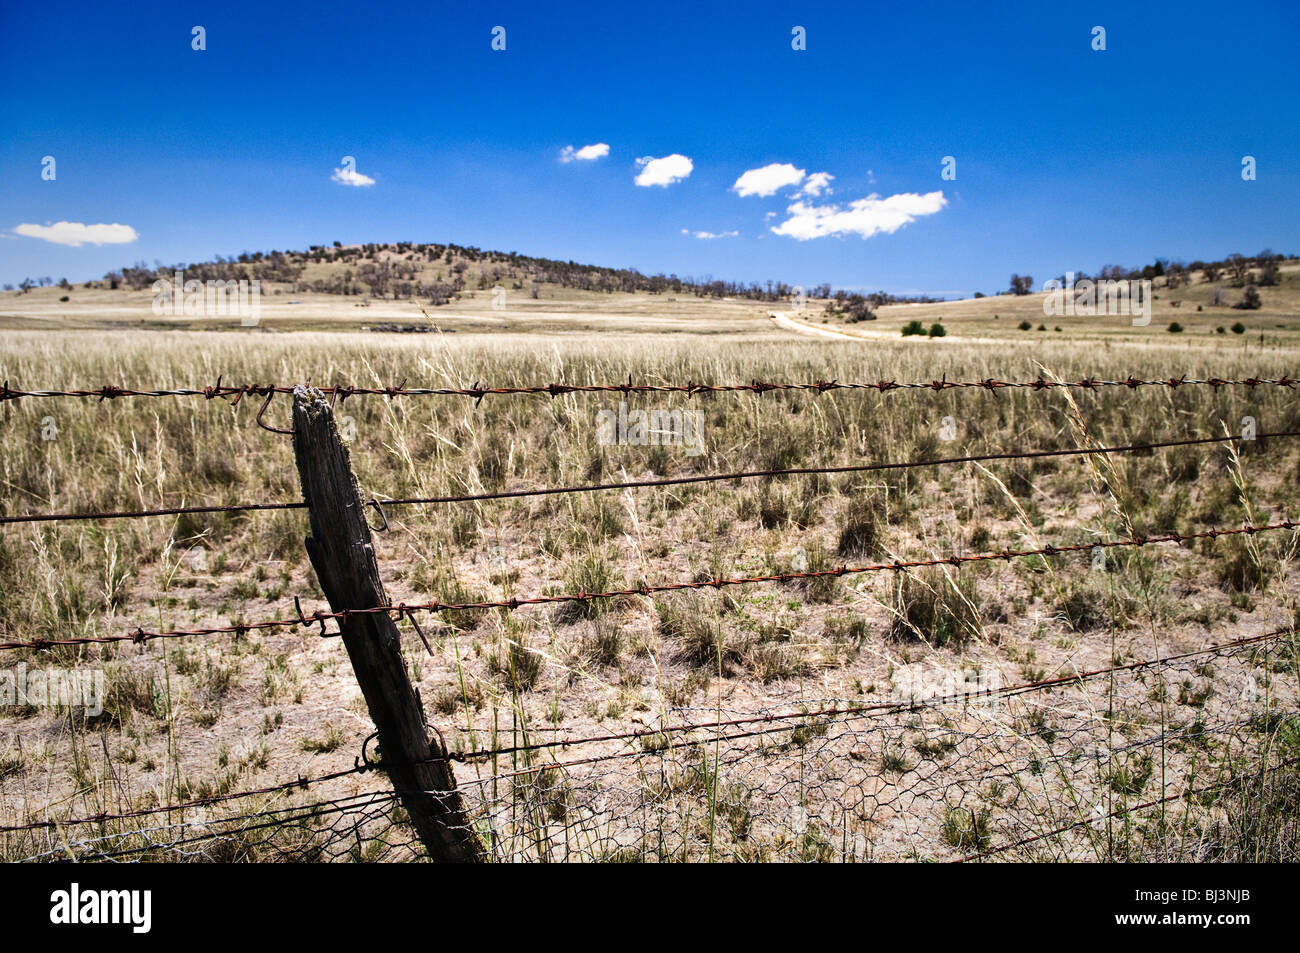 A barbed wire fence around a farm in drought in the Australian outback - Stock Image